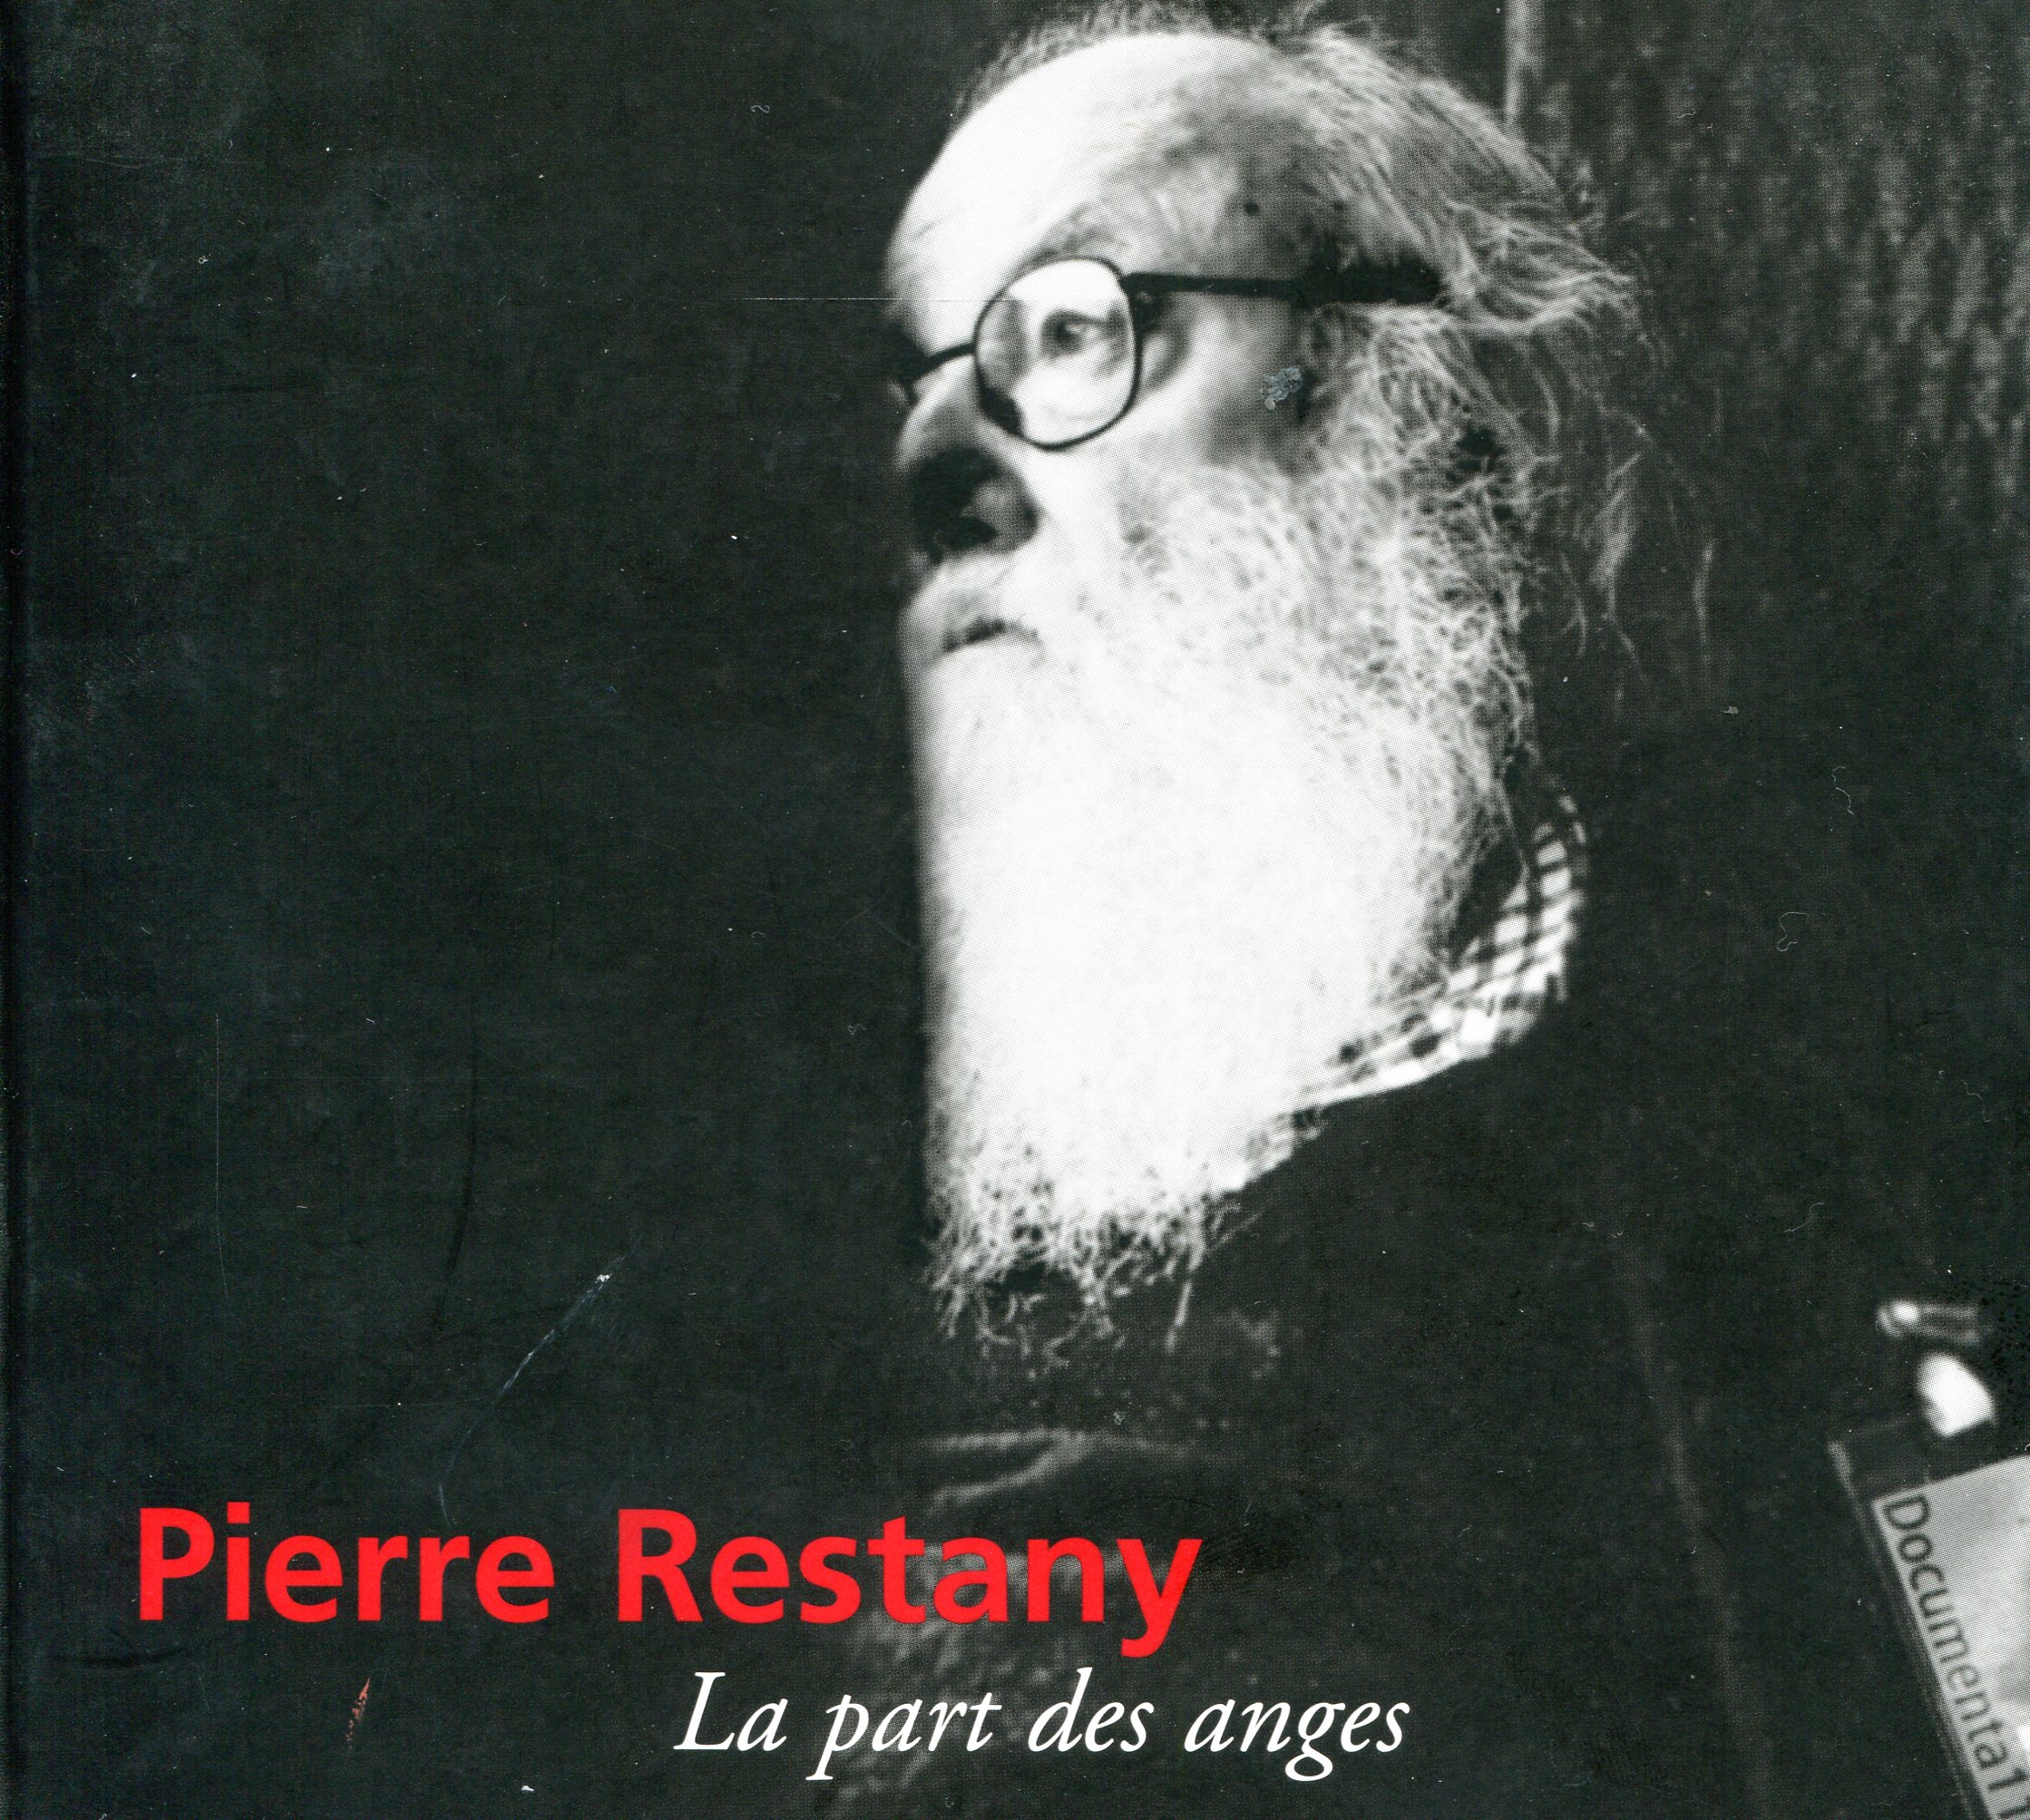 Pierre Restany, cover